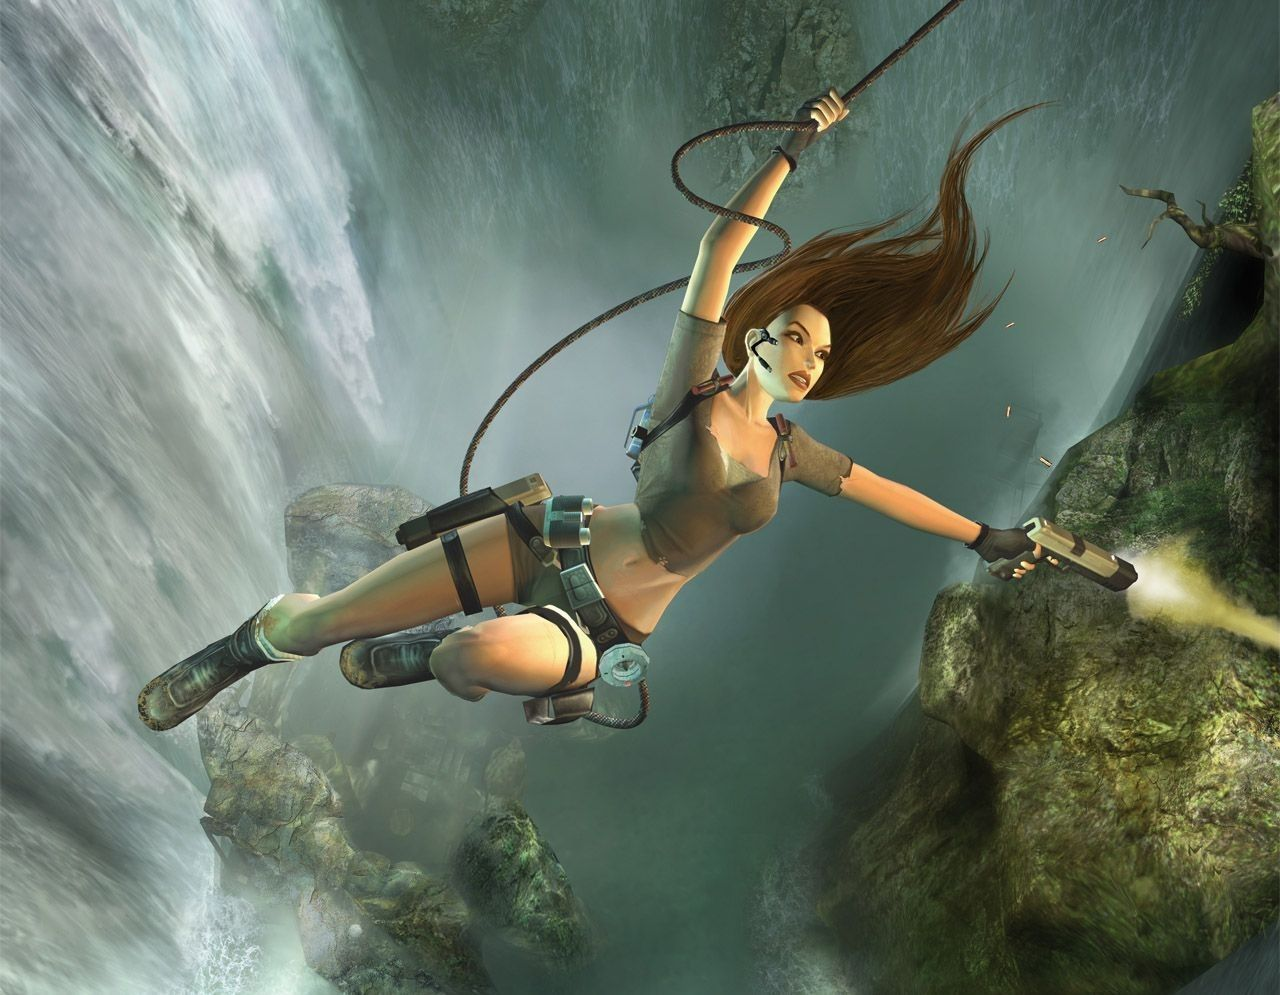 Lara croft gif porn demon exploited galleries